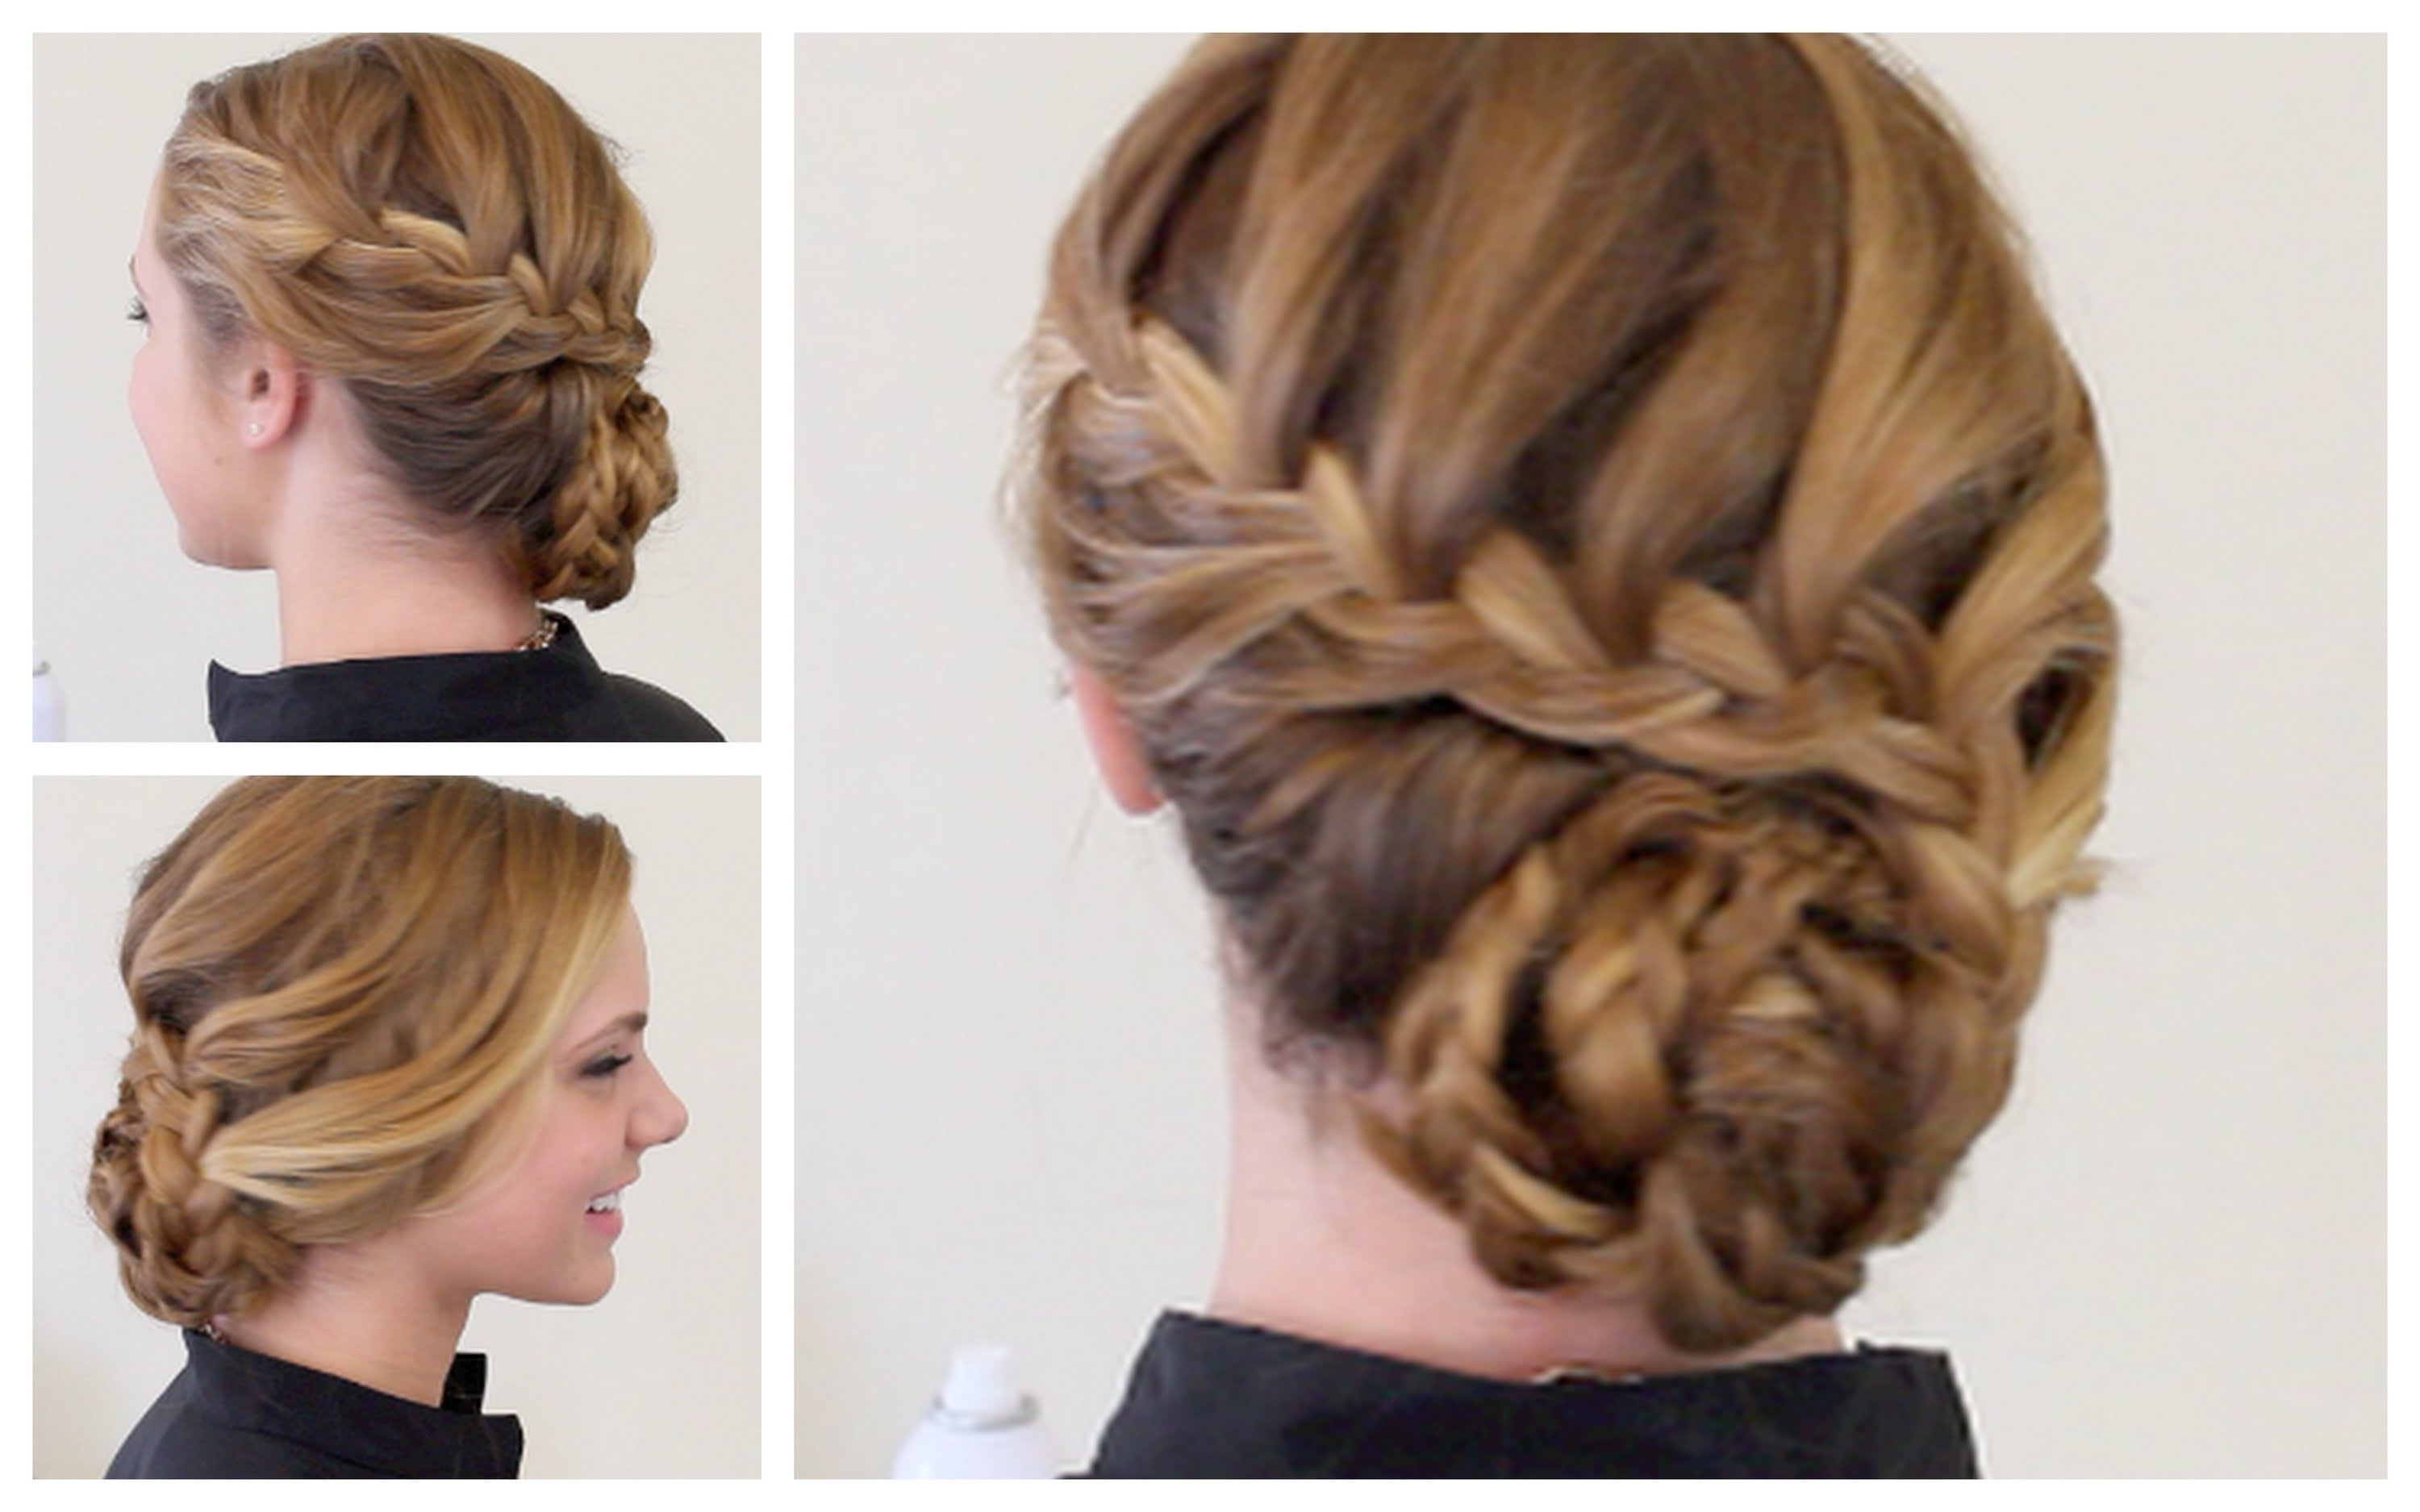 Prom Hairstyles With Waterfall Braids Formal Braided Hair Stock Within Braided Hair Updo Hairstyles (View 6 of 15)